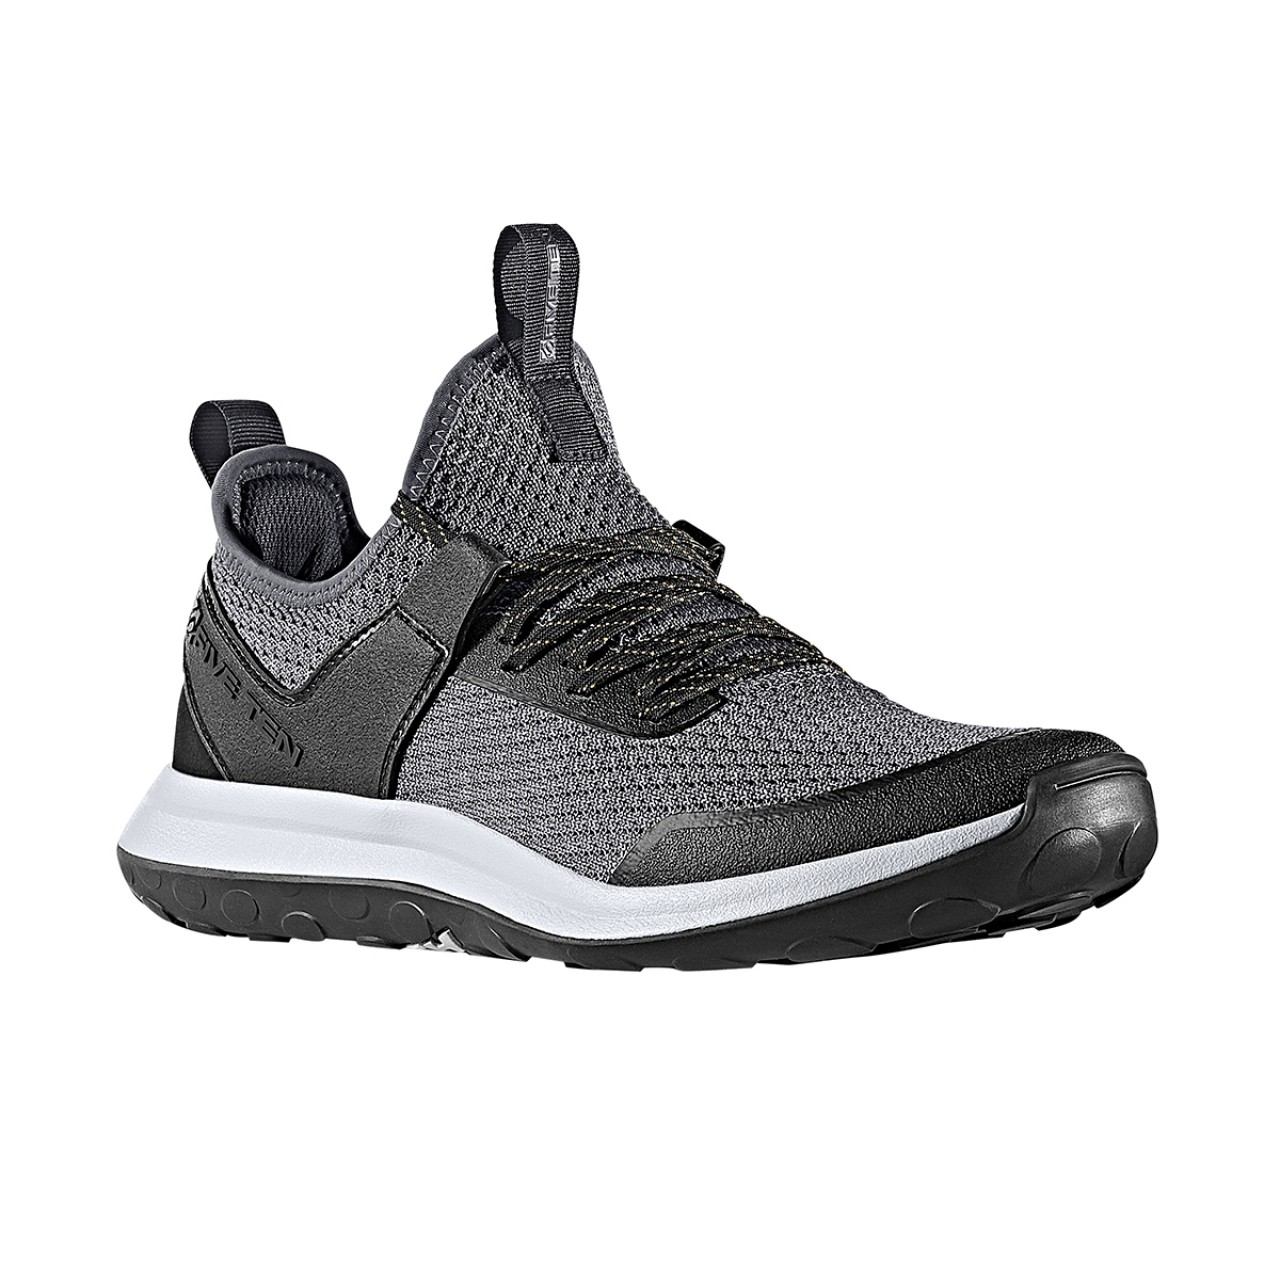 e36e07805 The Five Ten Access Knit are a lightweight pair of approach or biking shoes  with a high level of comfort and breathability. The soft mesh-knit  structure is ...